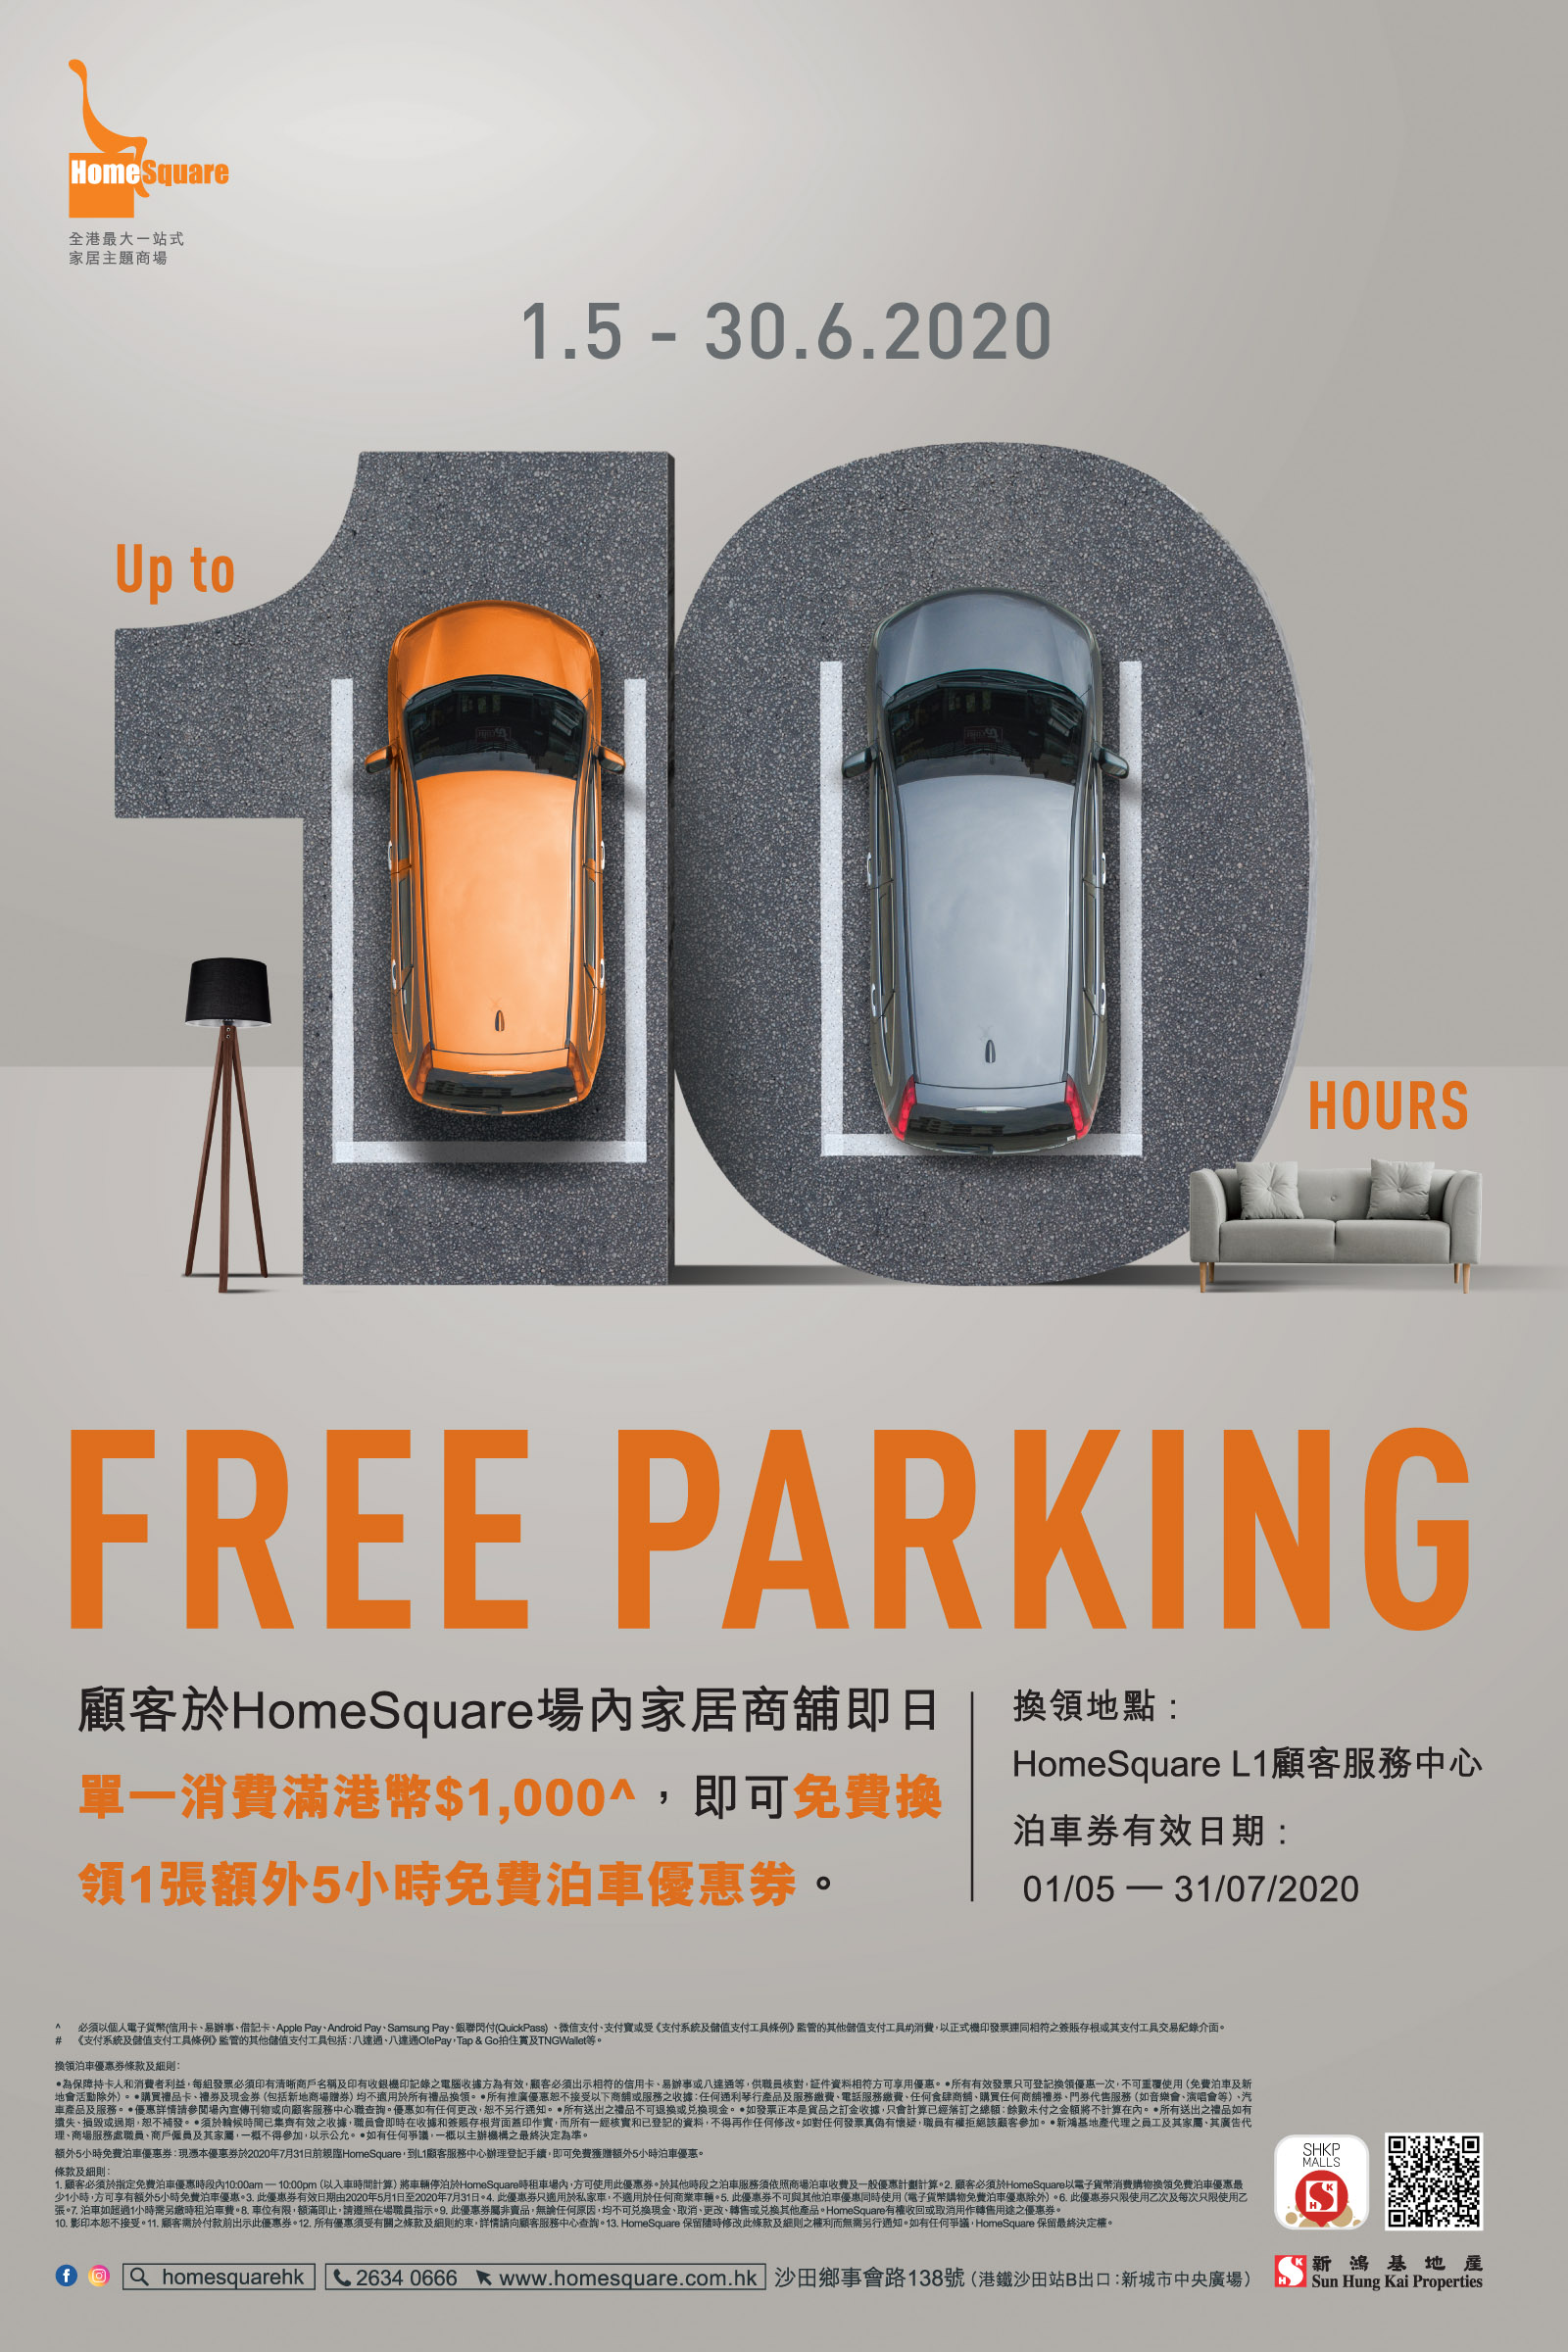 Enjoy up to 10 hours FREE parking